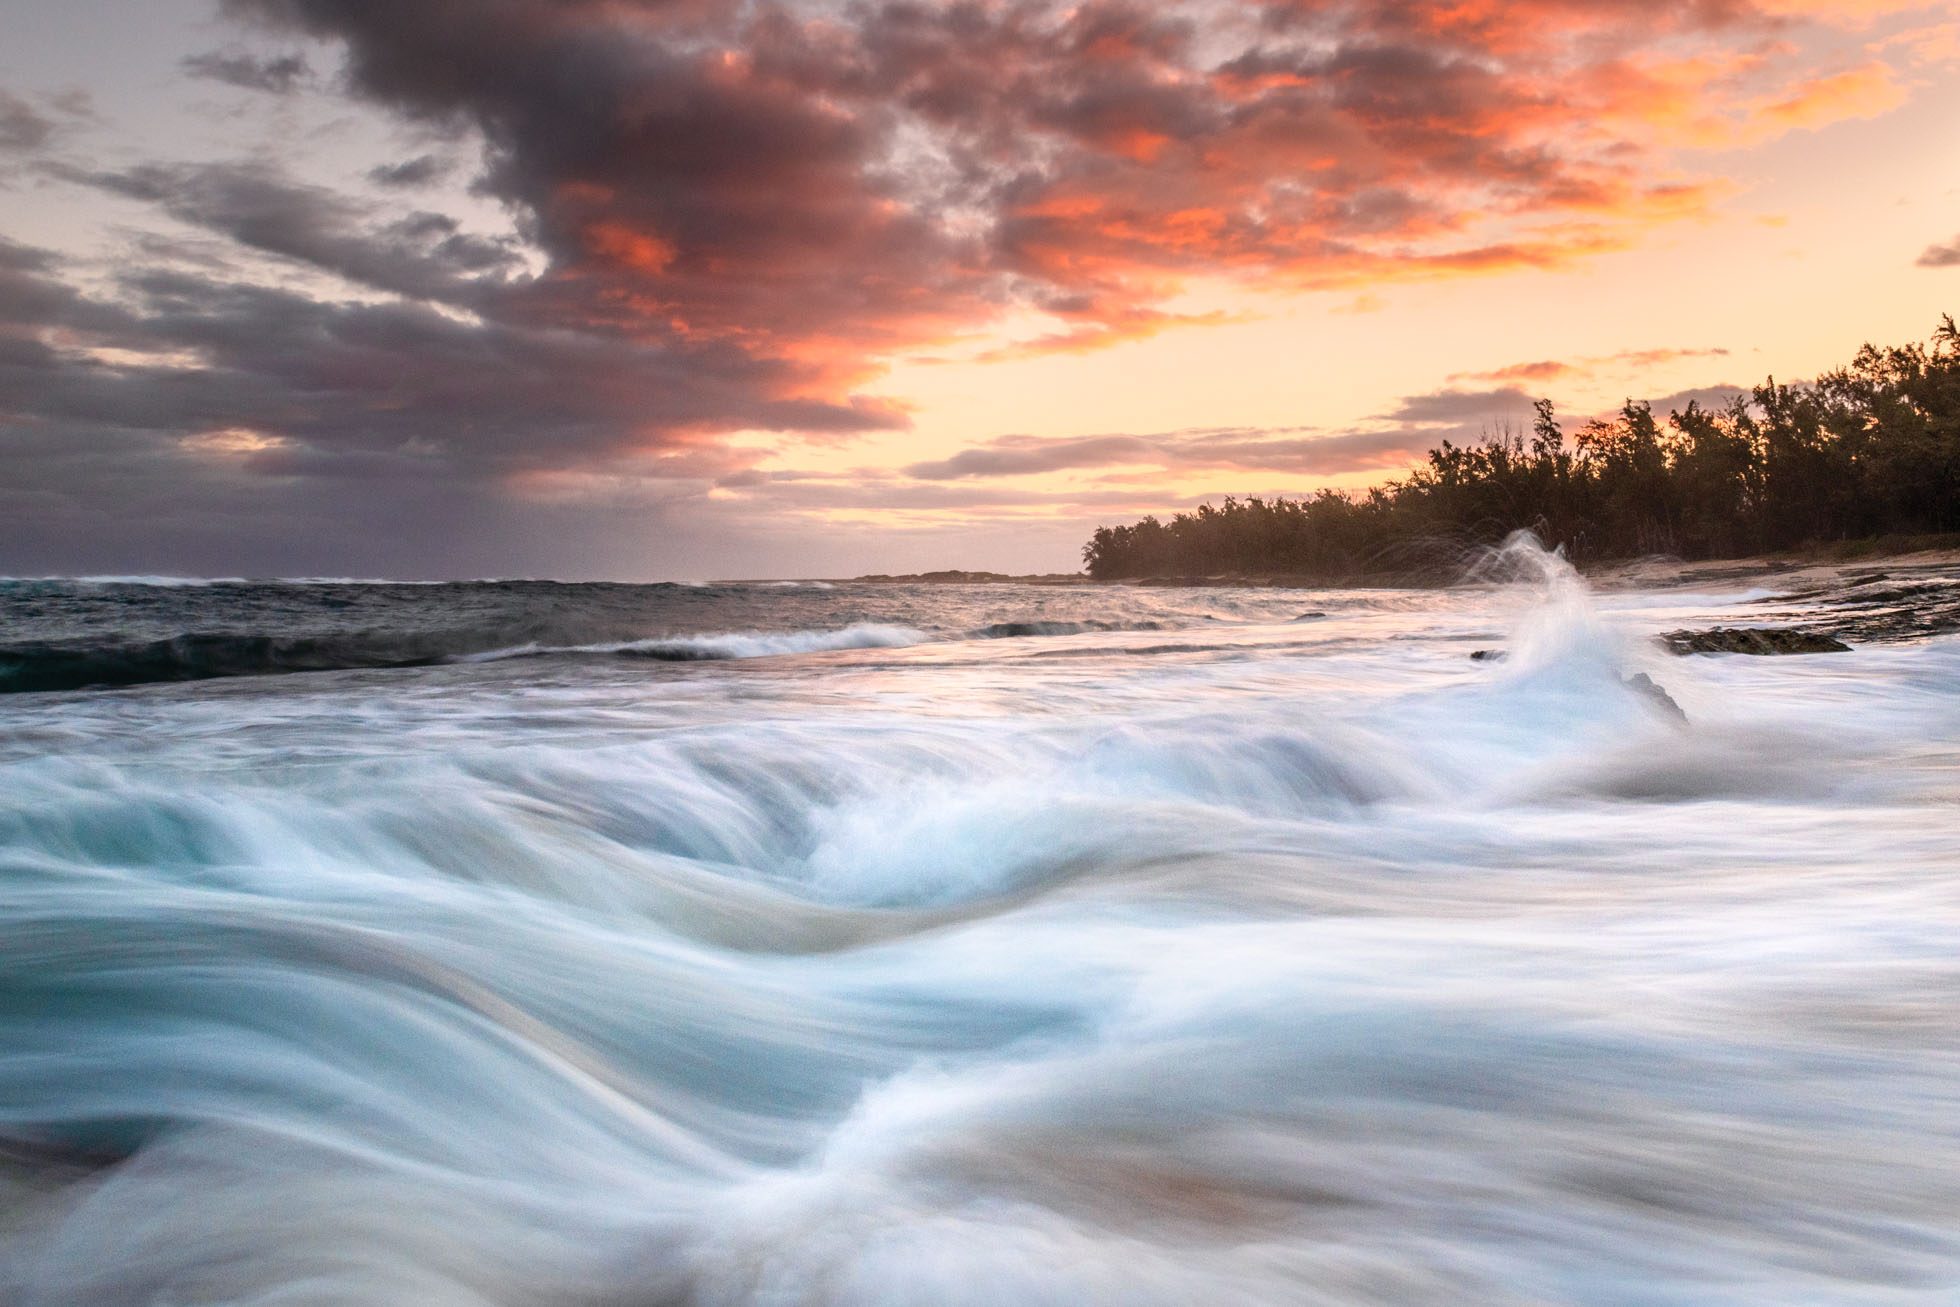 .4 seconds of waves in Oahu, Hawaii